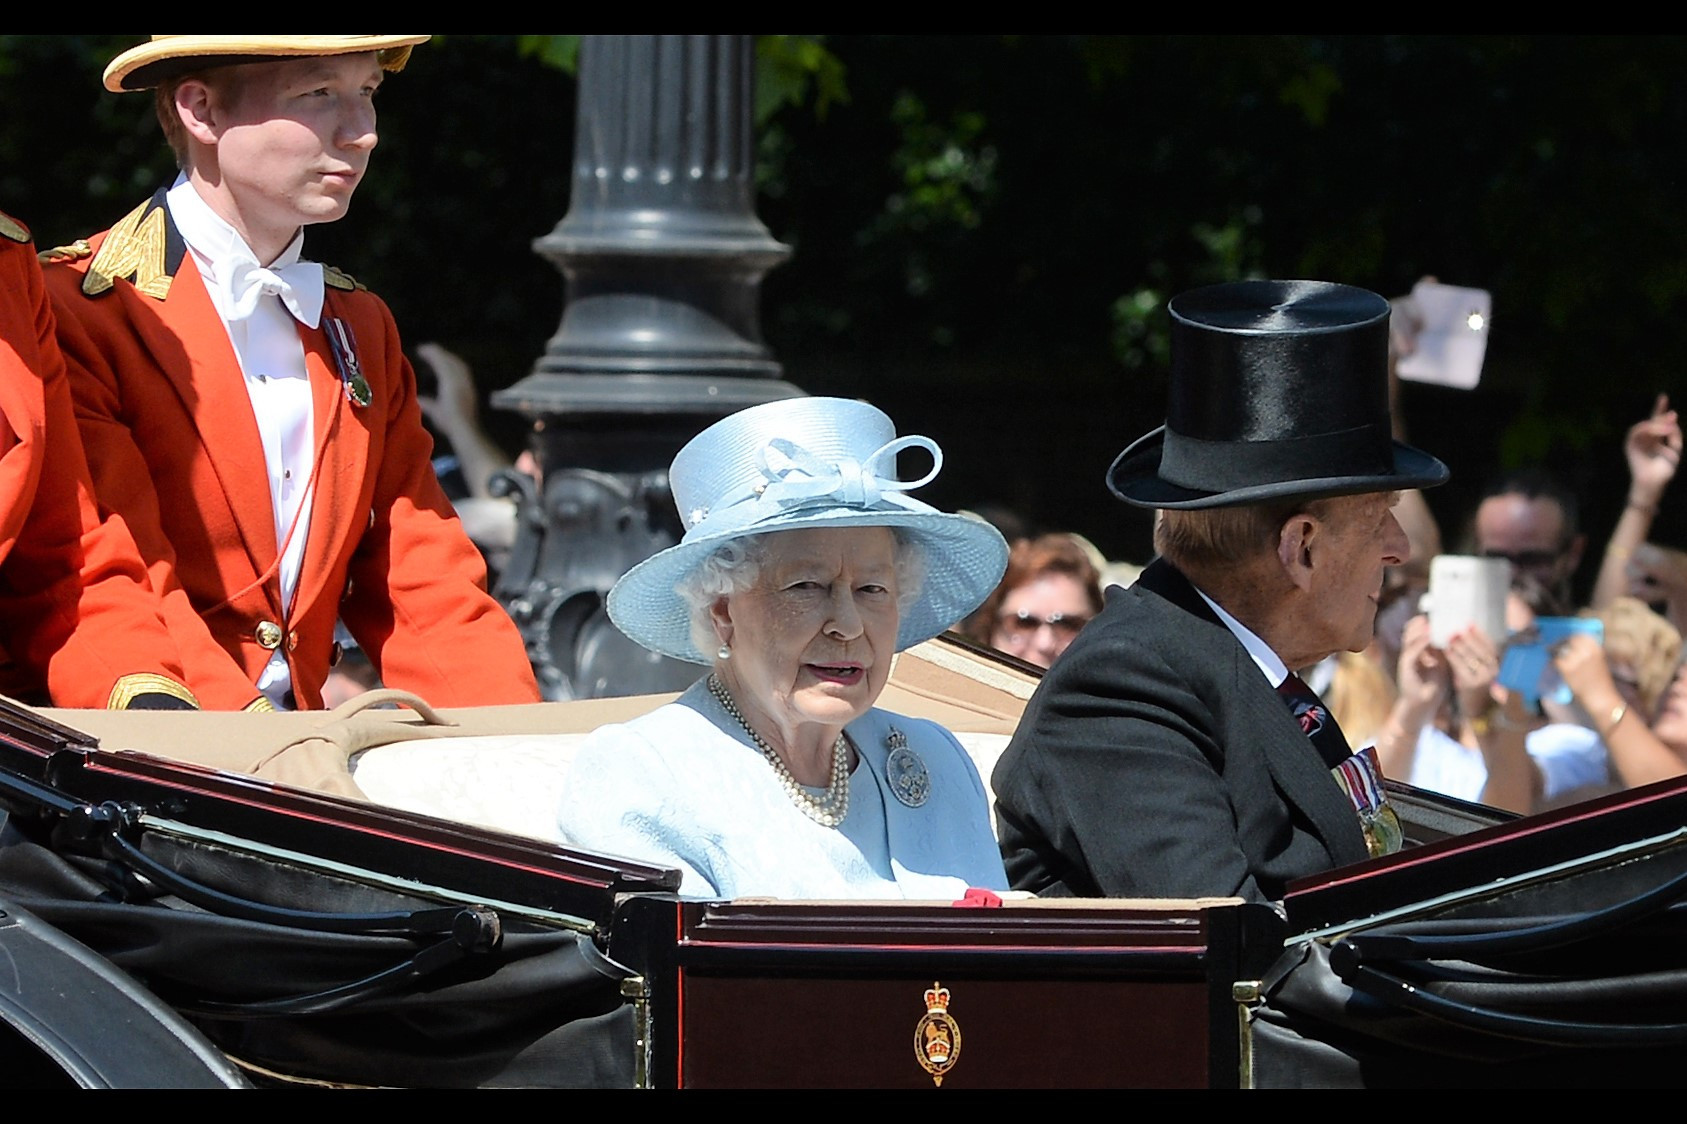 """I'm not endorsing your website, I don't know what a 'premieres.co' is, and my lawyers have special dispensation to carry M-16s. So tread carefully"" -  it's The Queen! She's on all the coins!!"